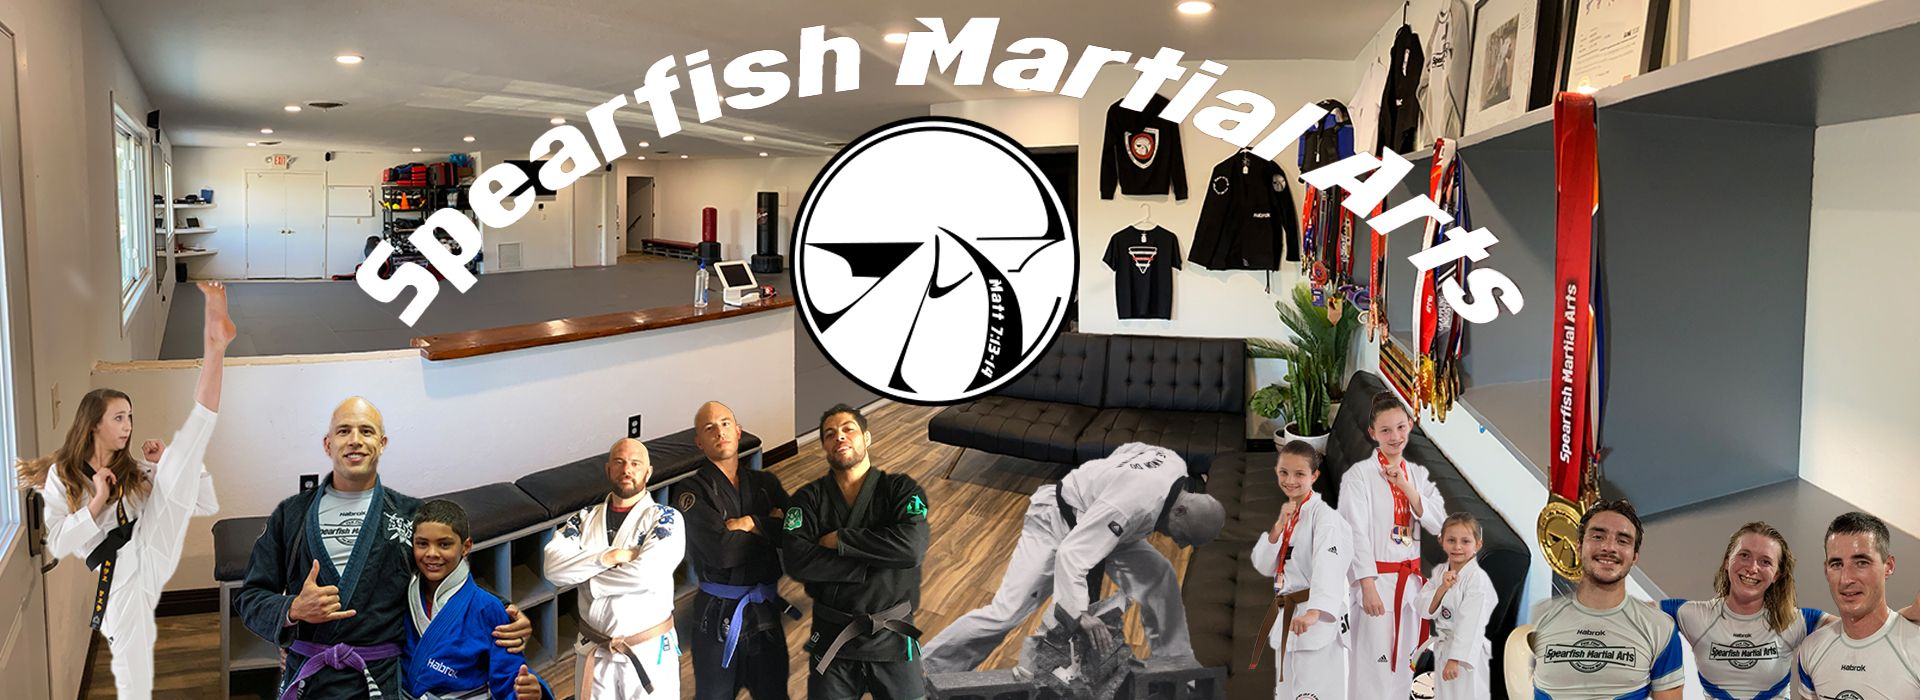 Spearfish Martial Arts